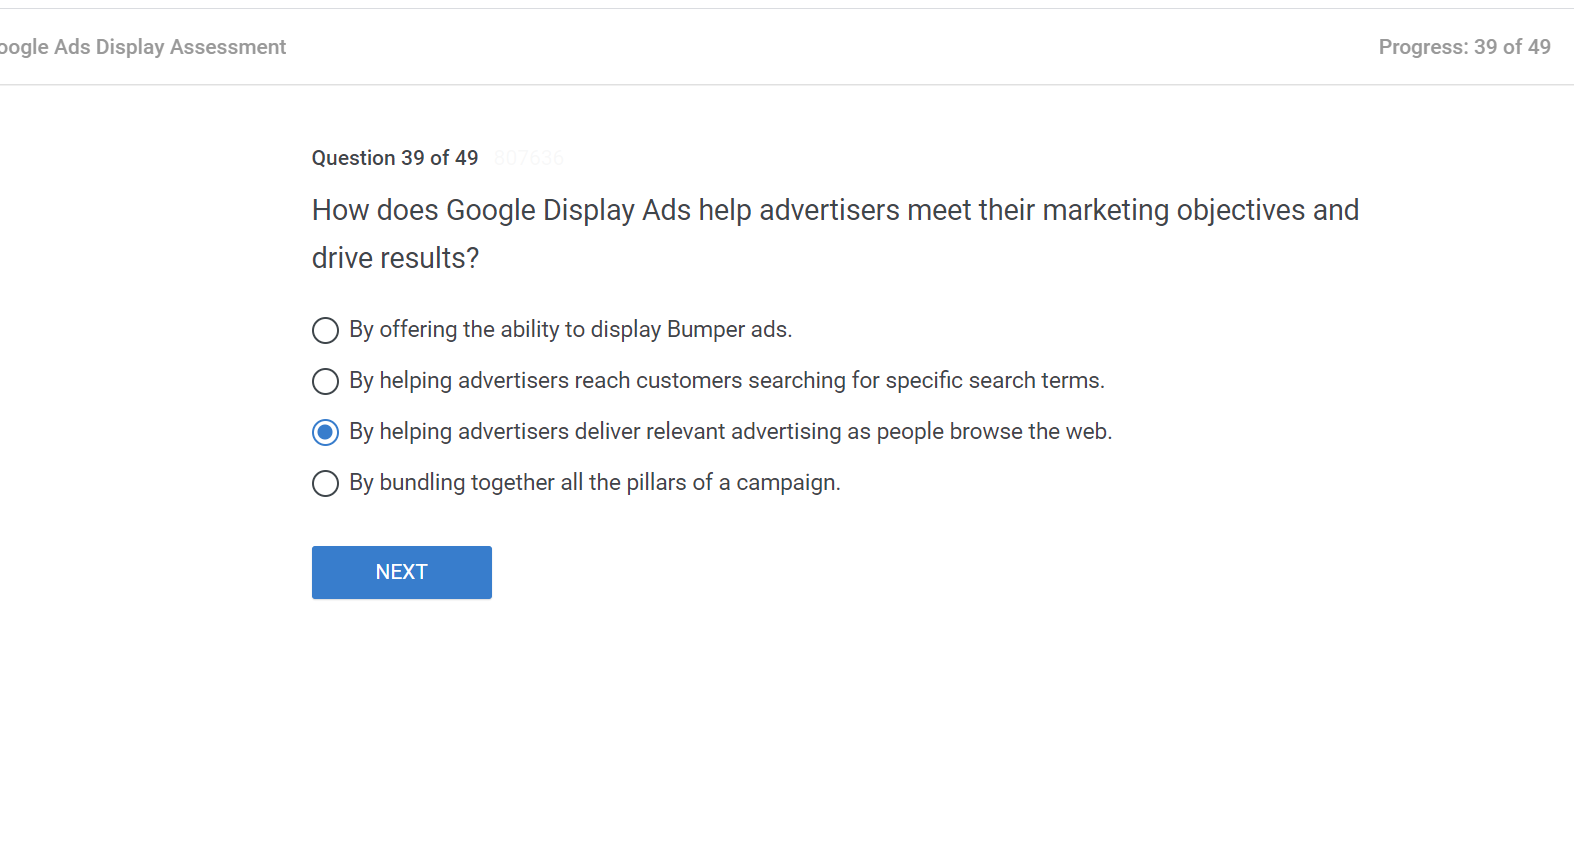 How does Google Display Ads help advertisers meet their marketing objectives and drive results